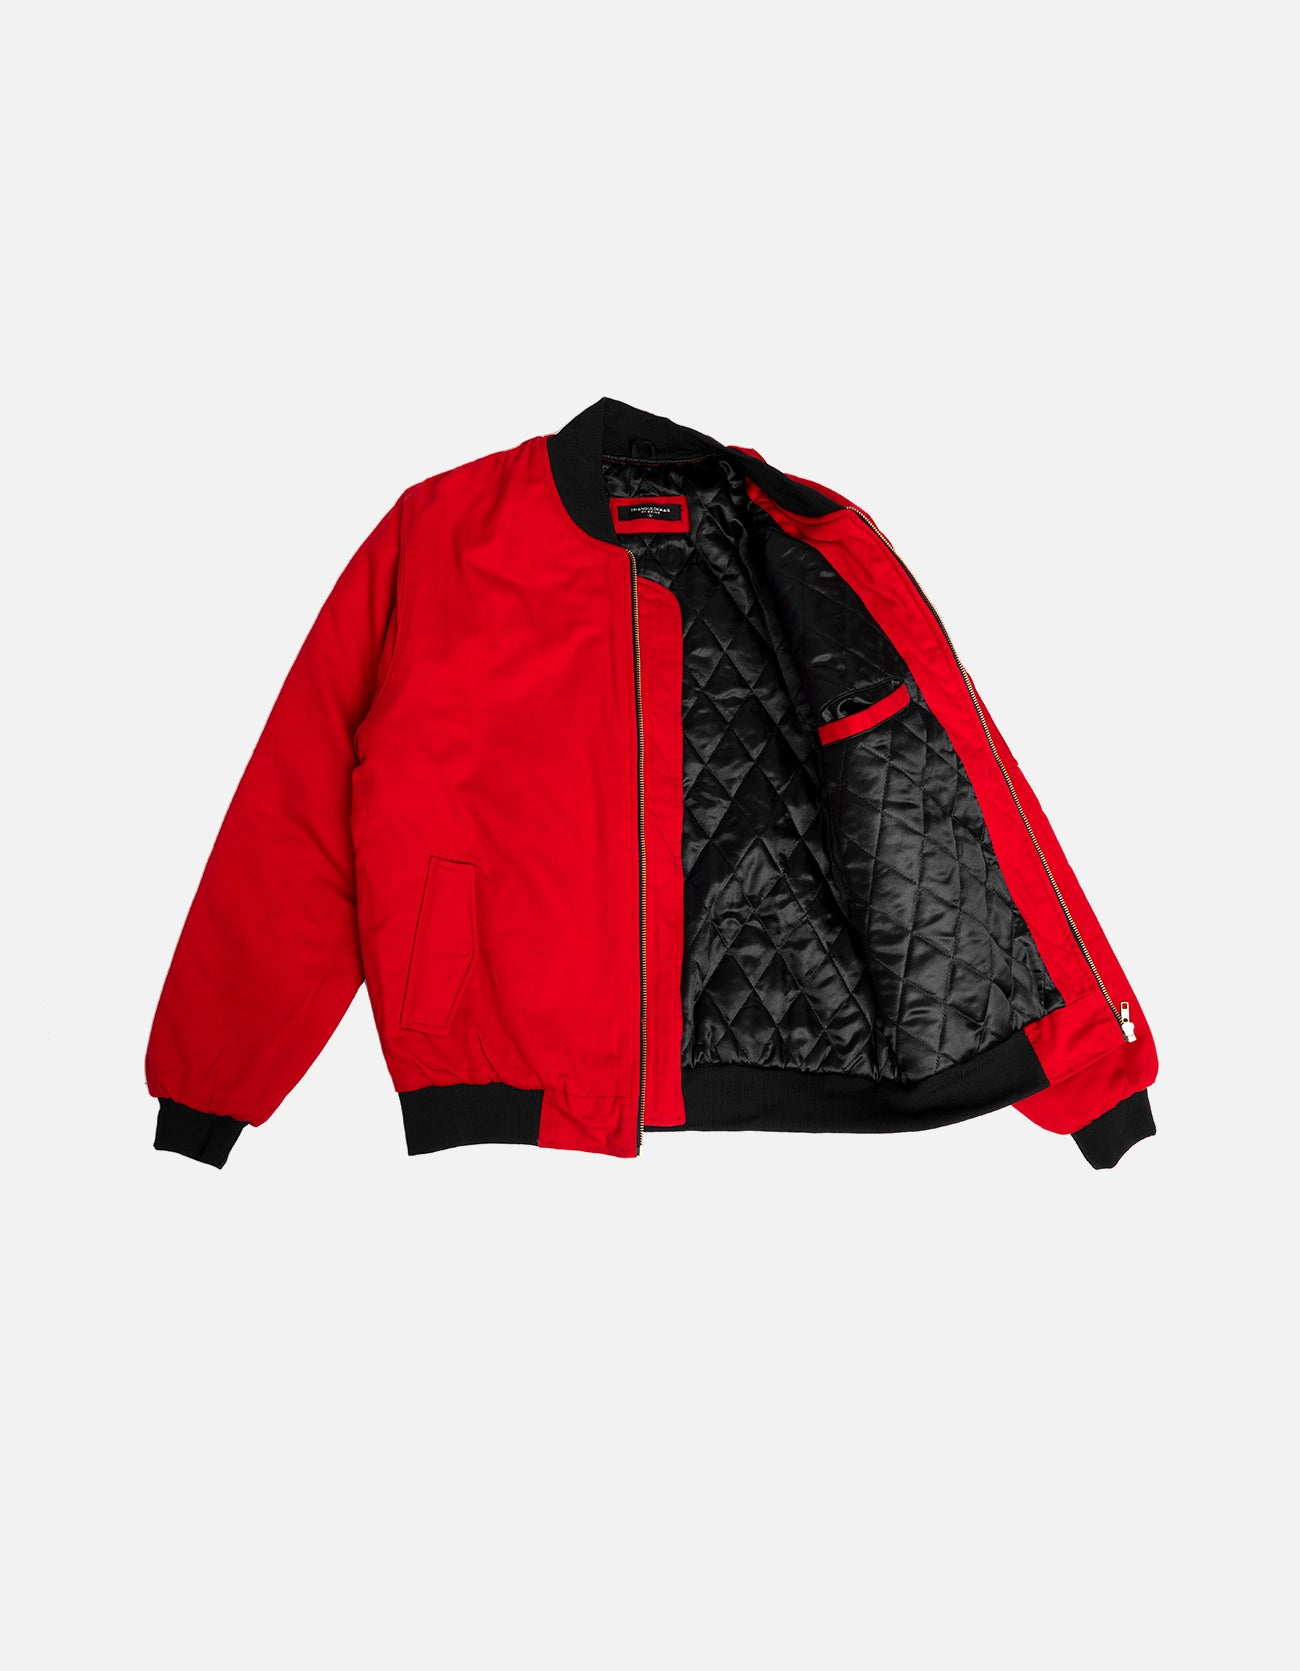 DIPSET Couture RED Bomber Jacket